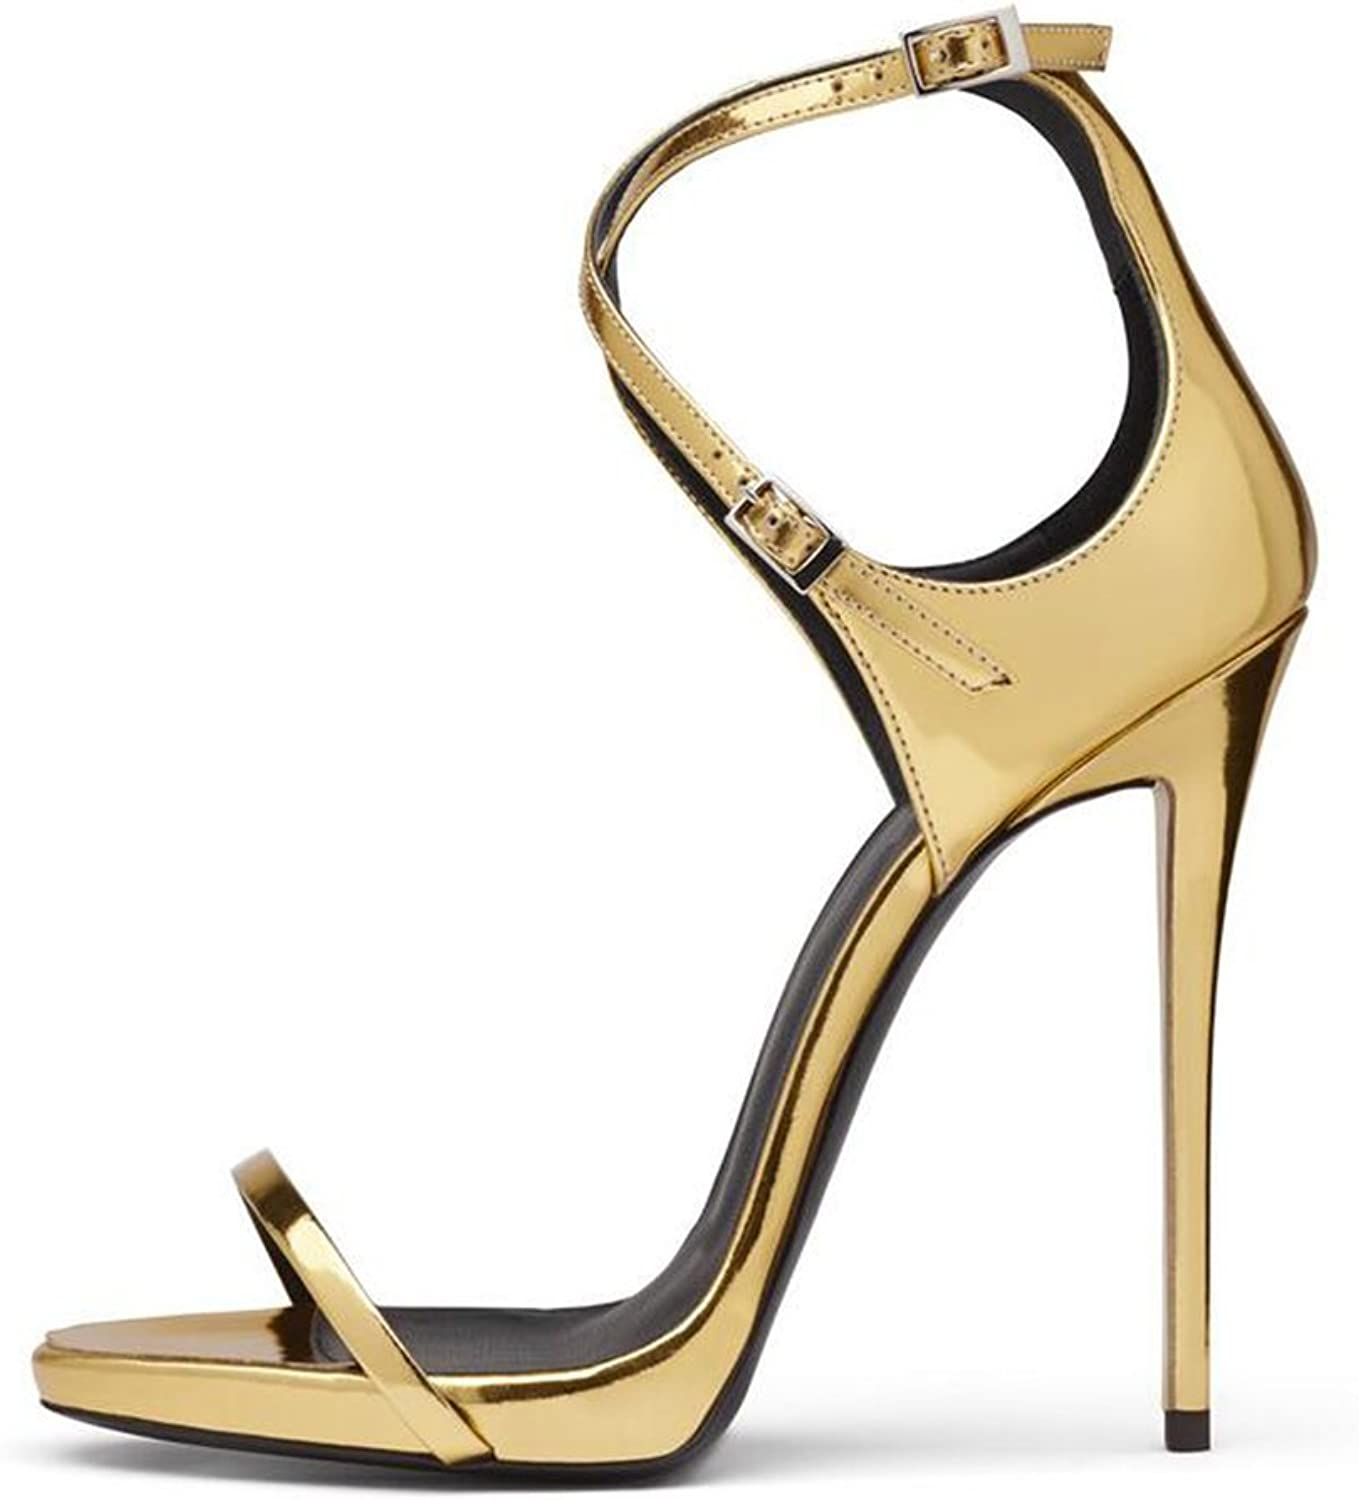 Womens's shoes Europe And The United States Ladies golden Patent Leather Bag With Cross Buckle High Heel Sandals Sandals